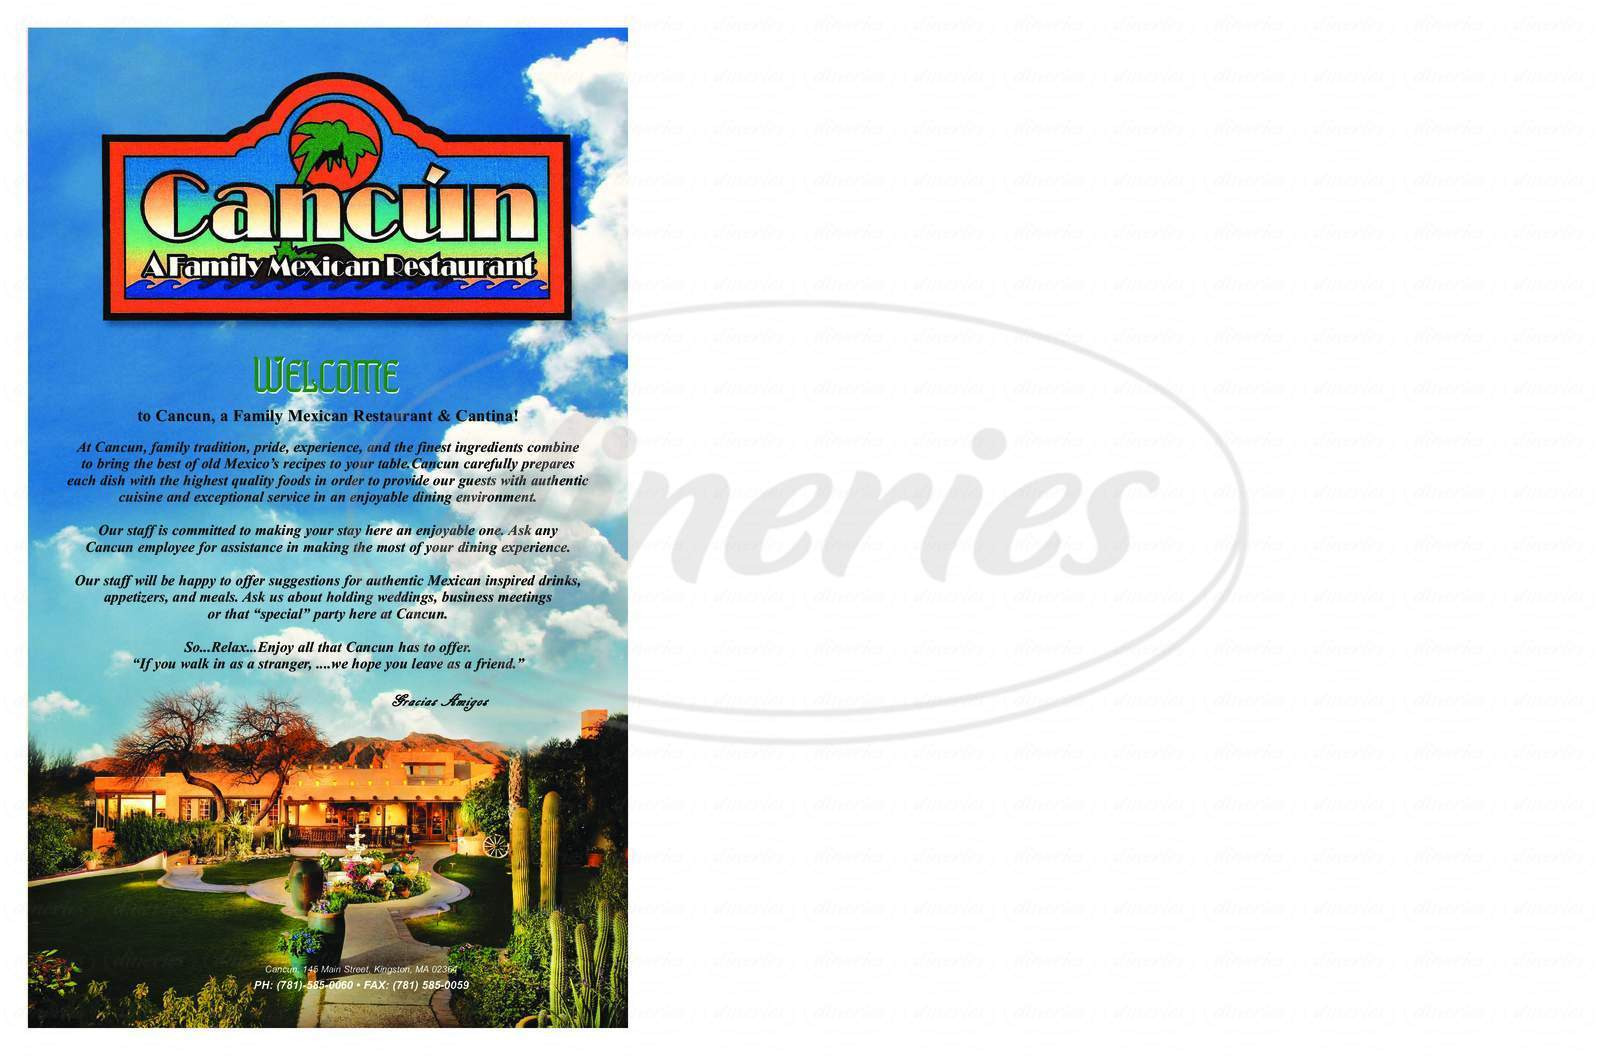 menu for Cancun Family Restaurant